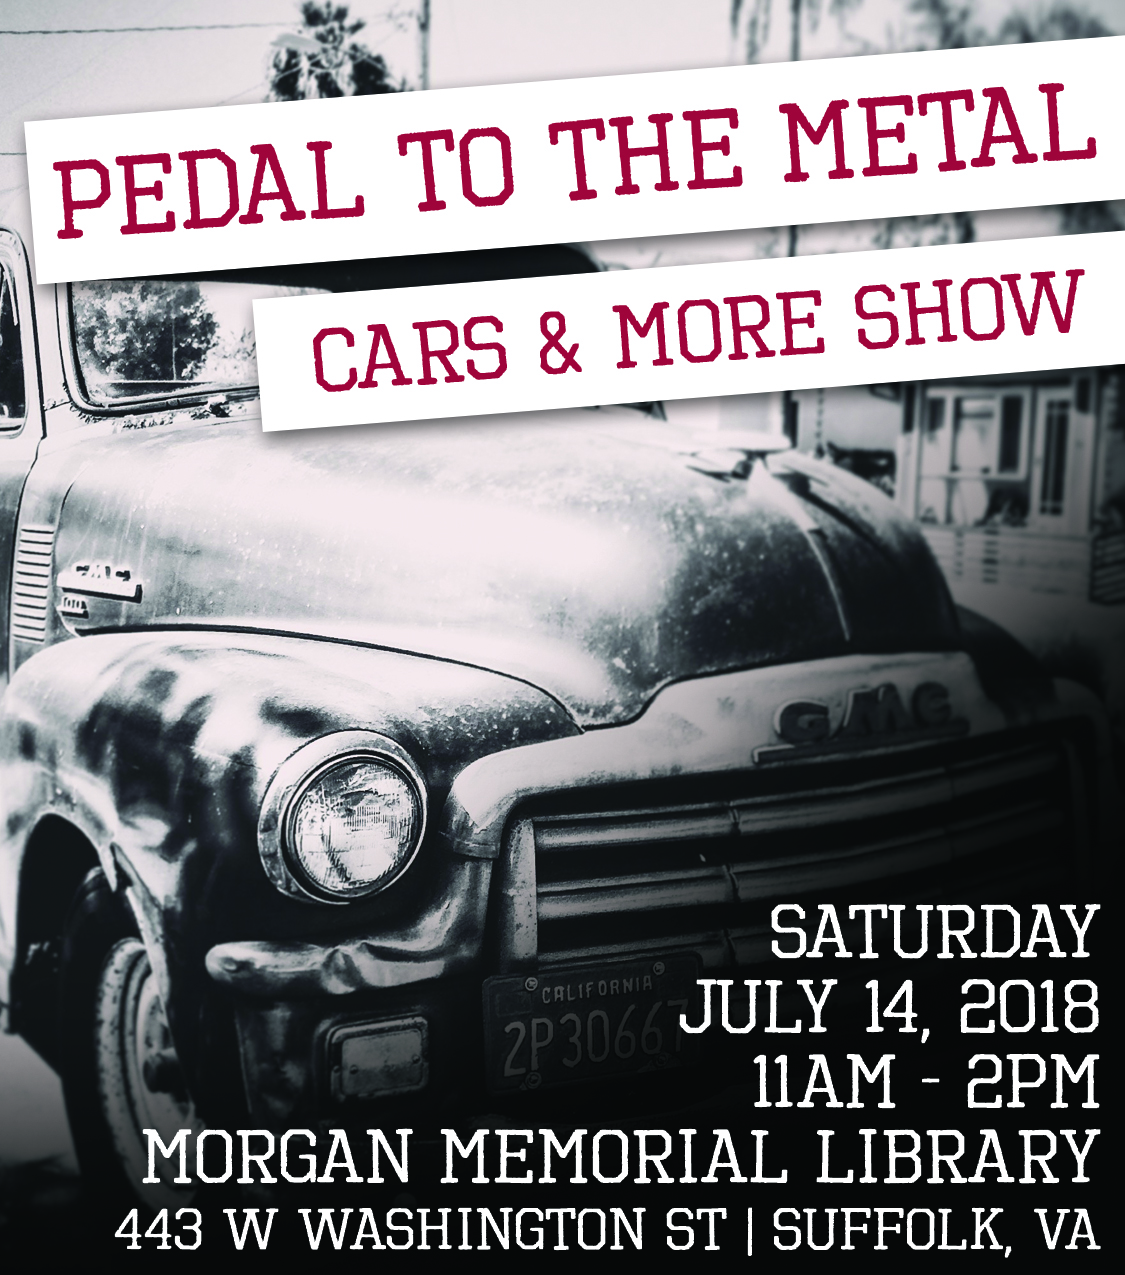 Pedal to the Metal Cars & More Show